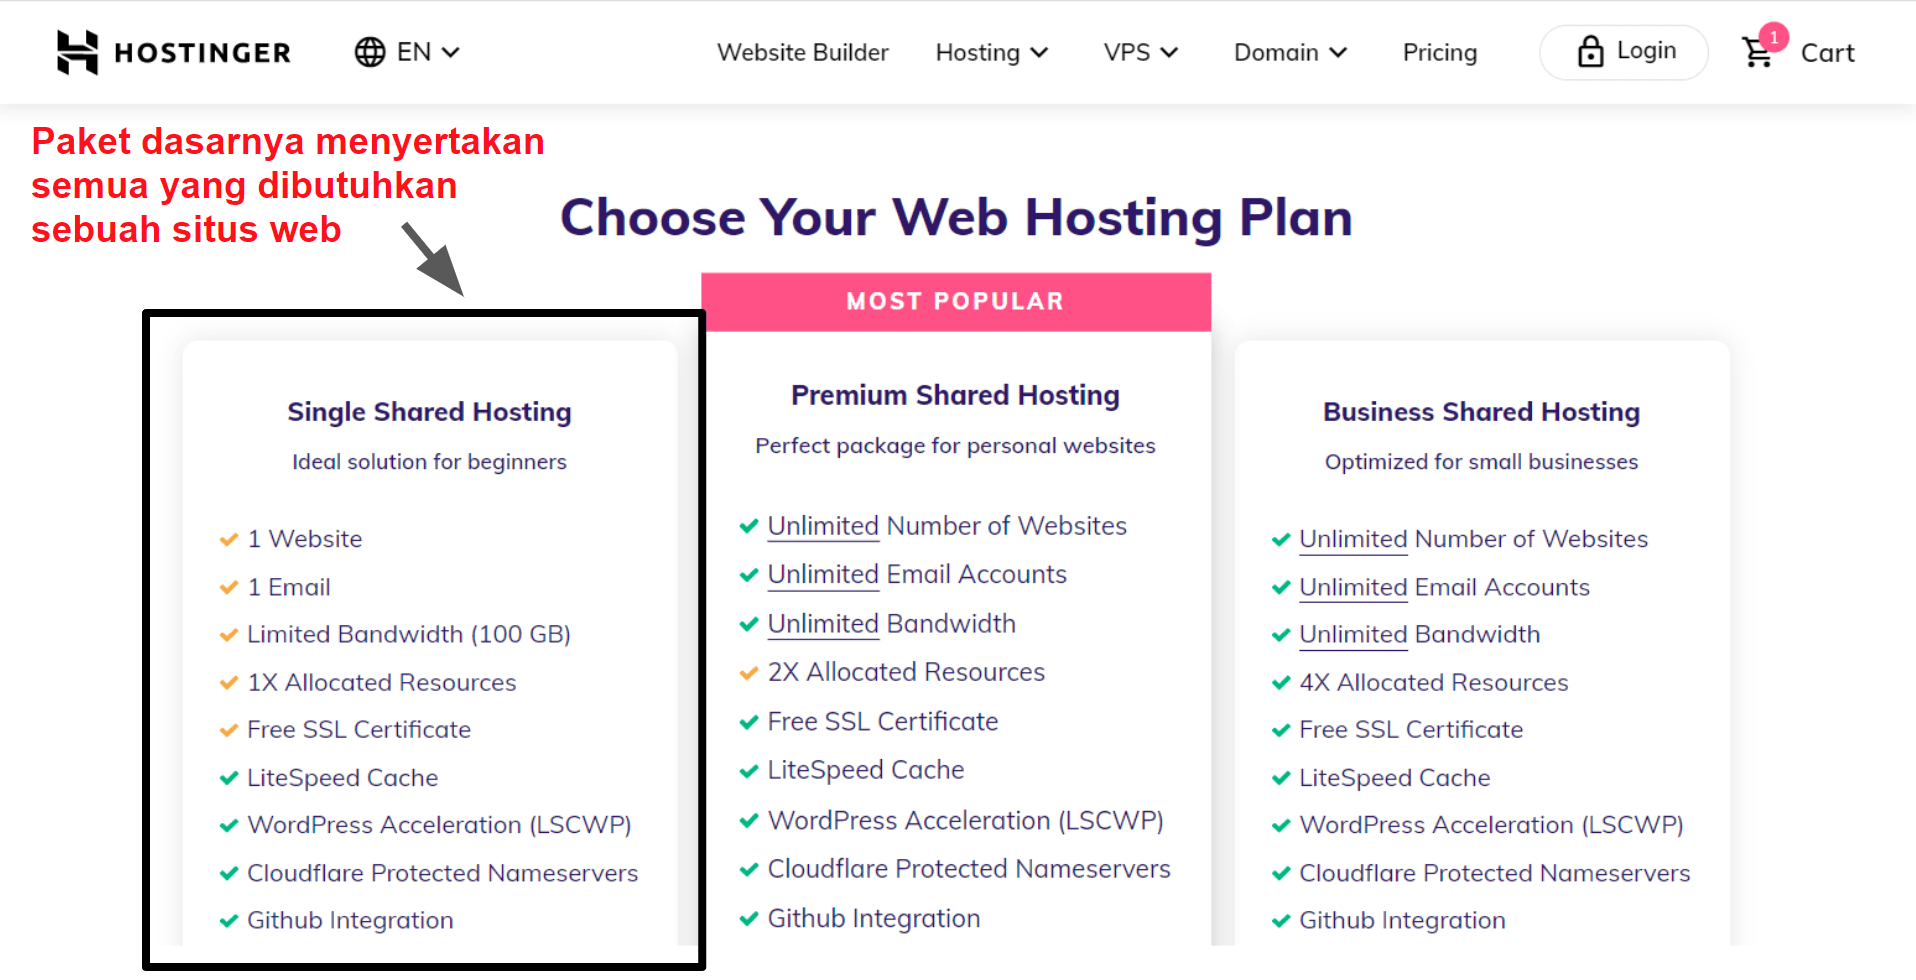 hosting plan features_ID